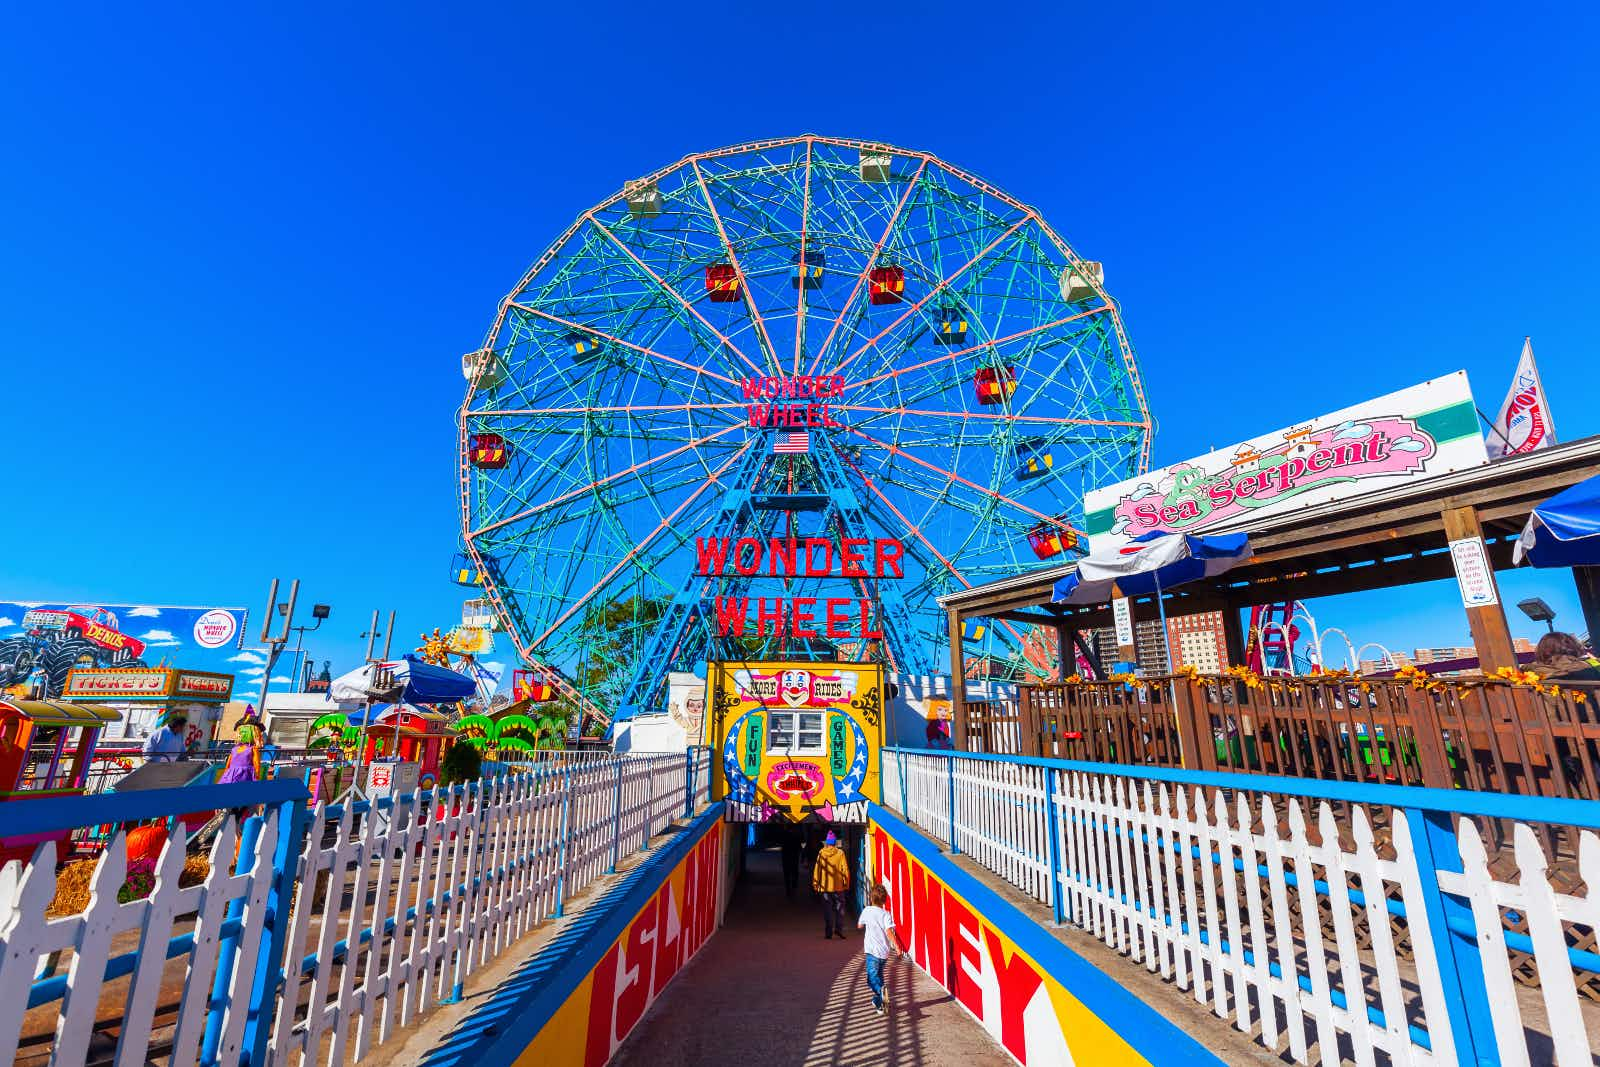 The iconic Wonder Wheel of Coney Island still stands tall ©Christian Mueller / Shutterstock